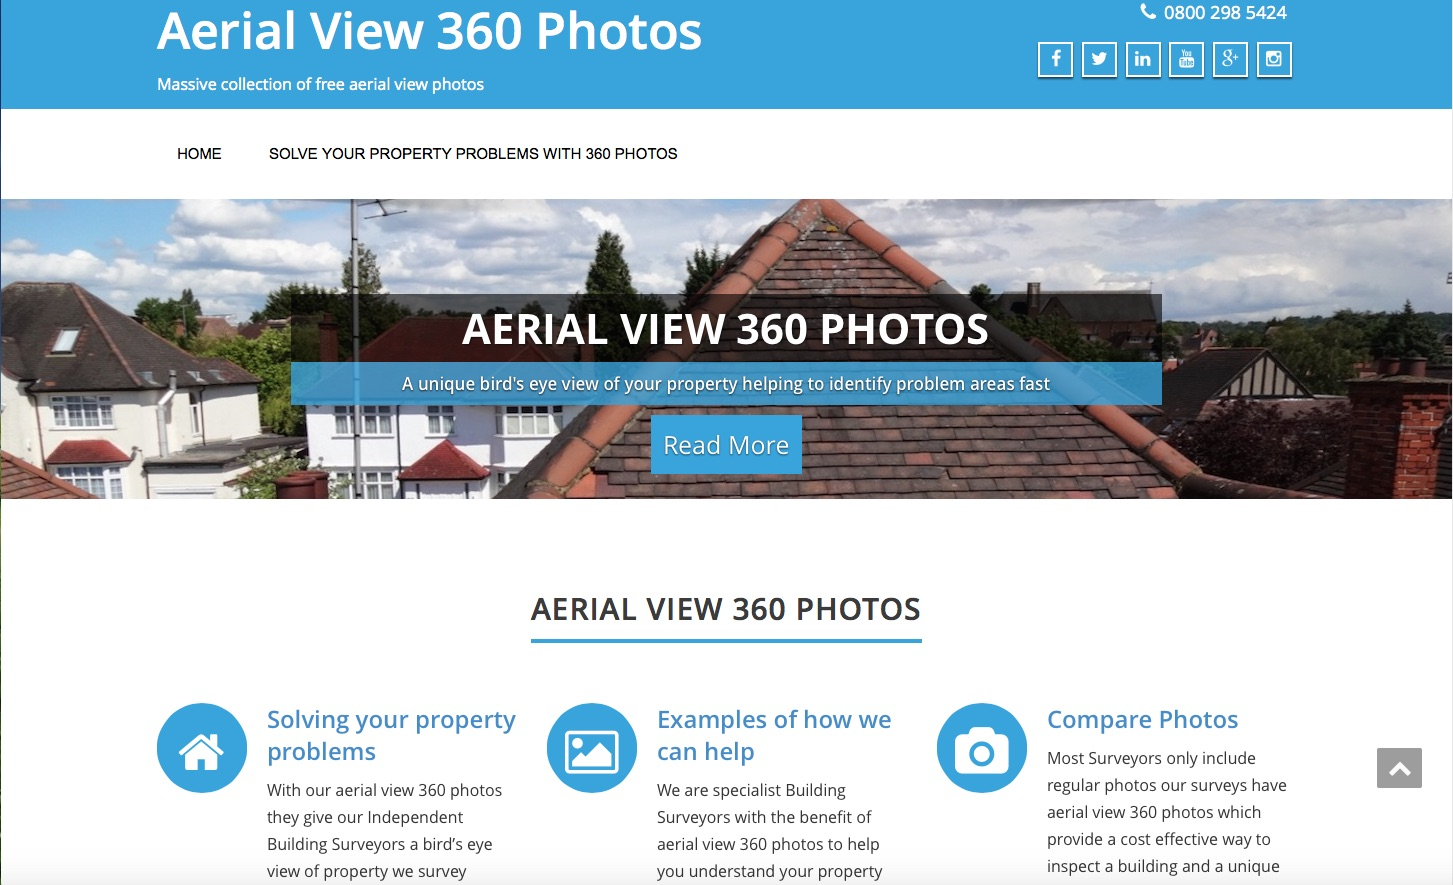 Website Brief - aerialview360photo.com